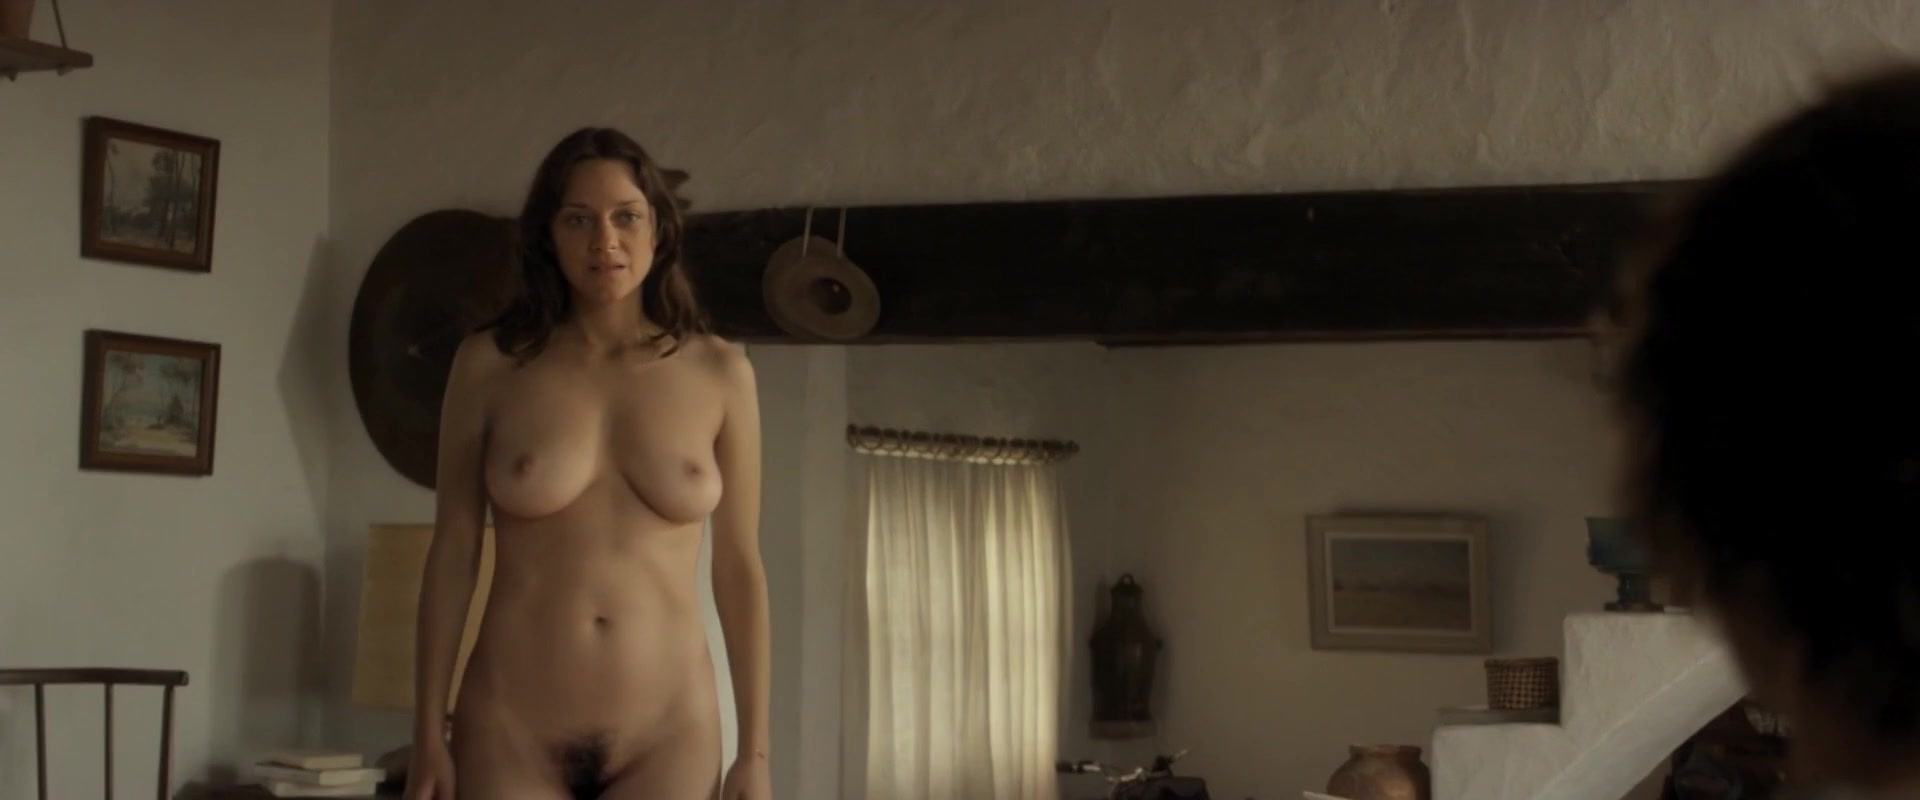 Porn Marion Cotillard nude (85 foto and video), Pussy, Leaked, Twitter, swimsuit 2015